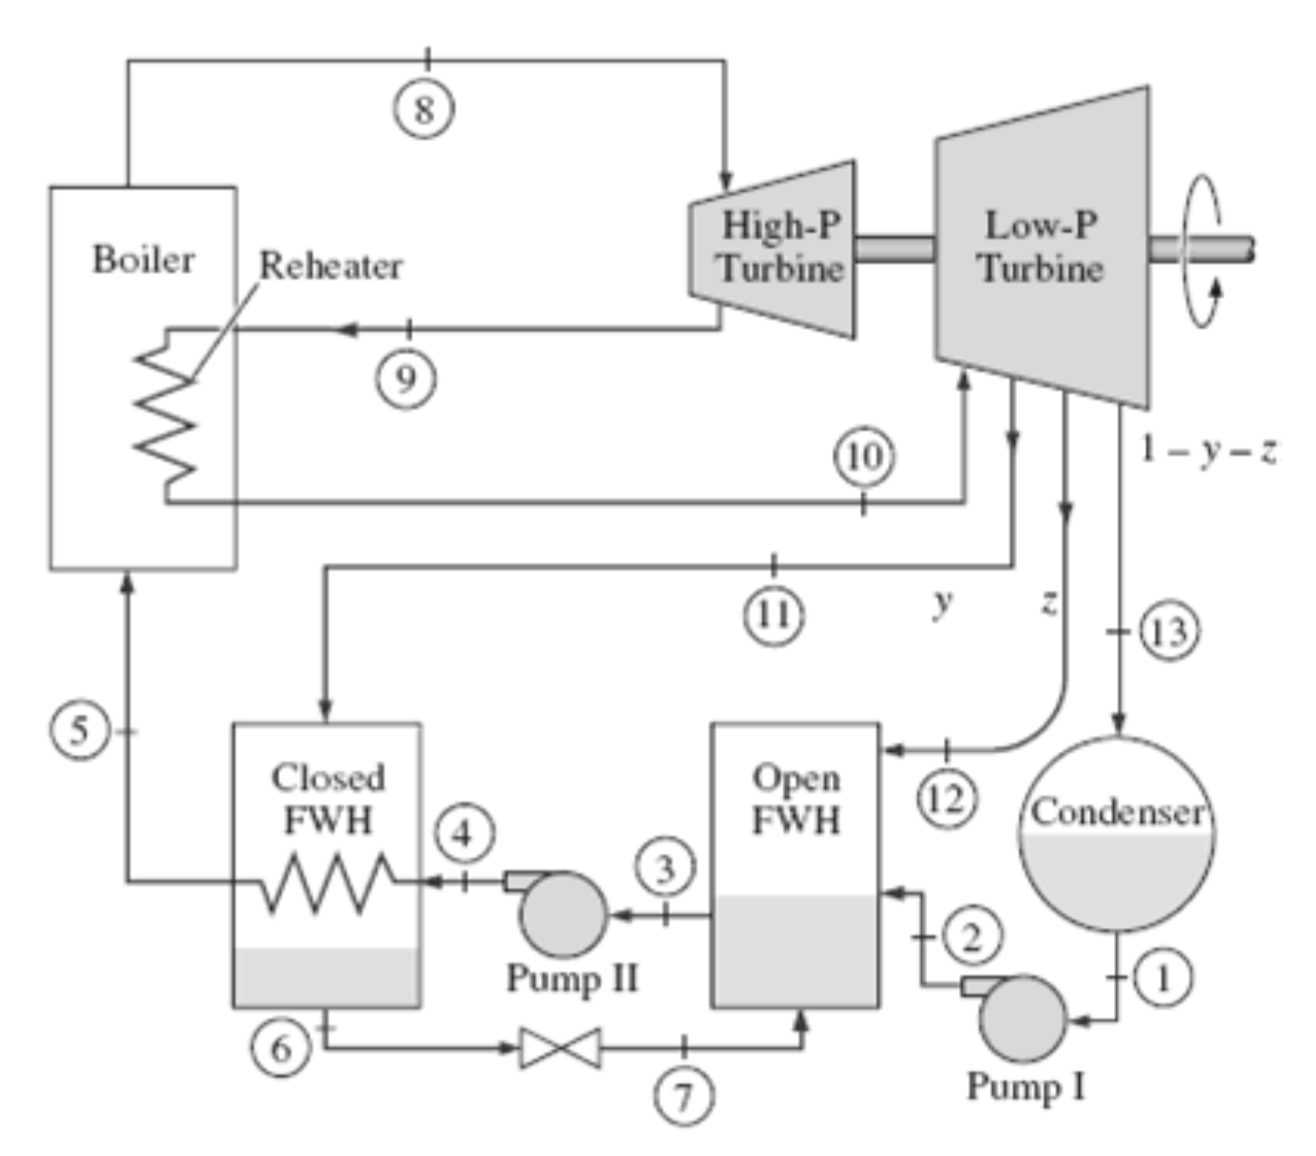 t s diagram of thermal power plant